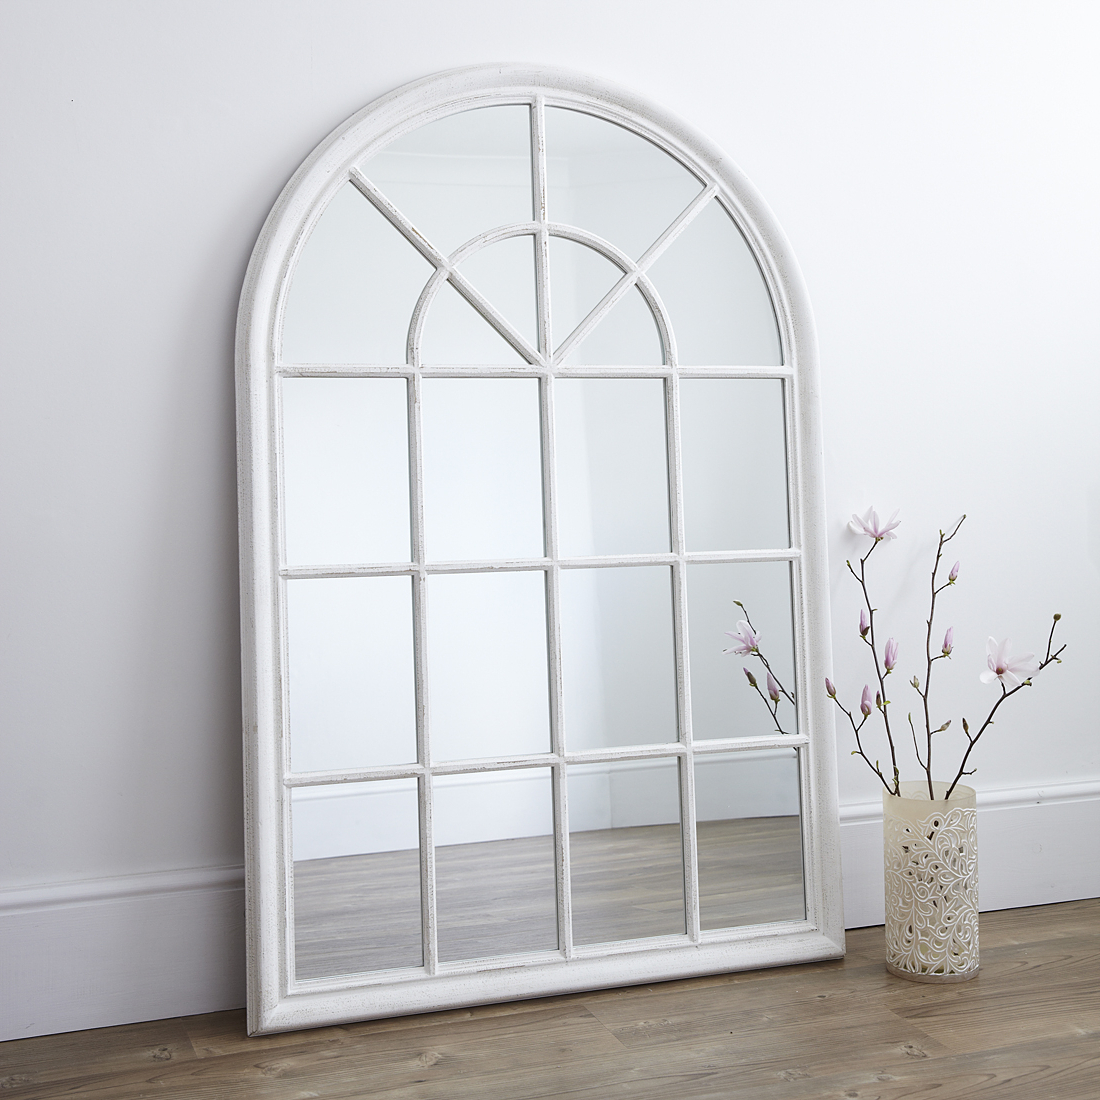 Metal Arch Window Wall Mirrors Throughout Widely Used White Arched Window Wall Mirror (View 11 of 20)